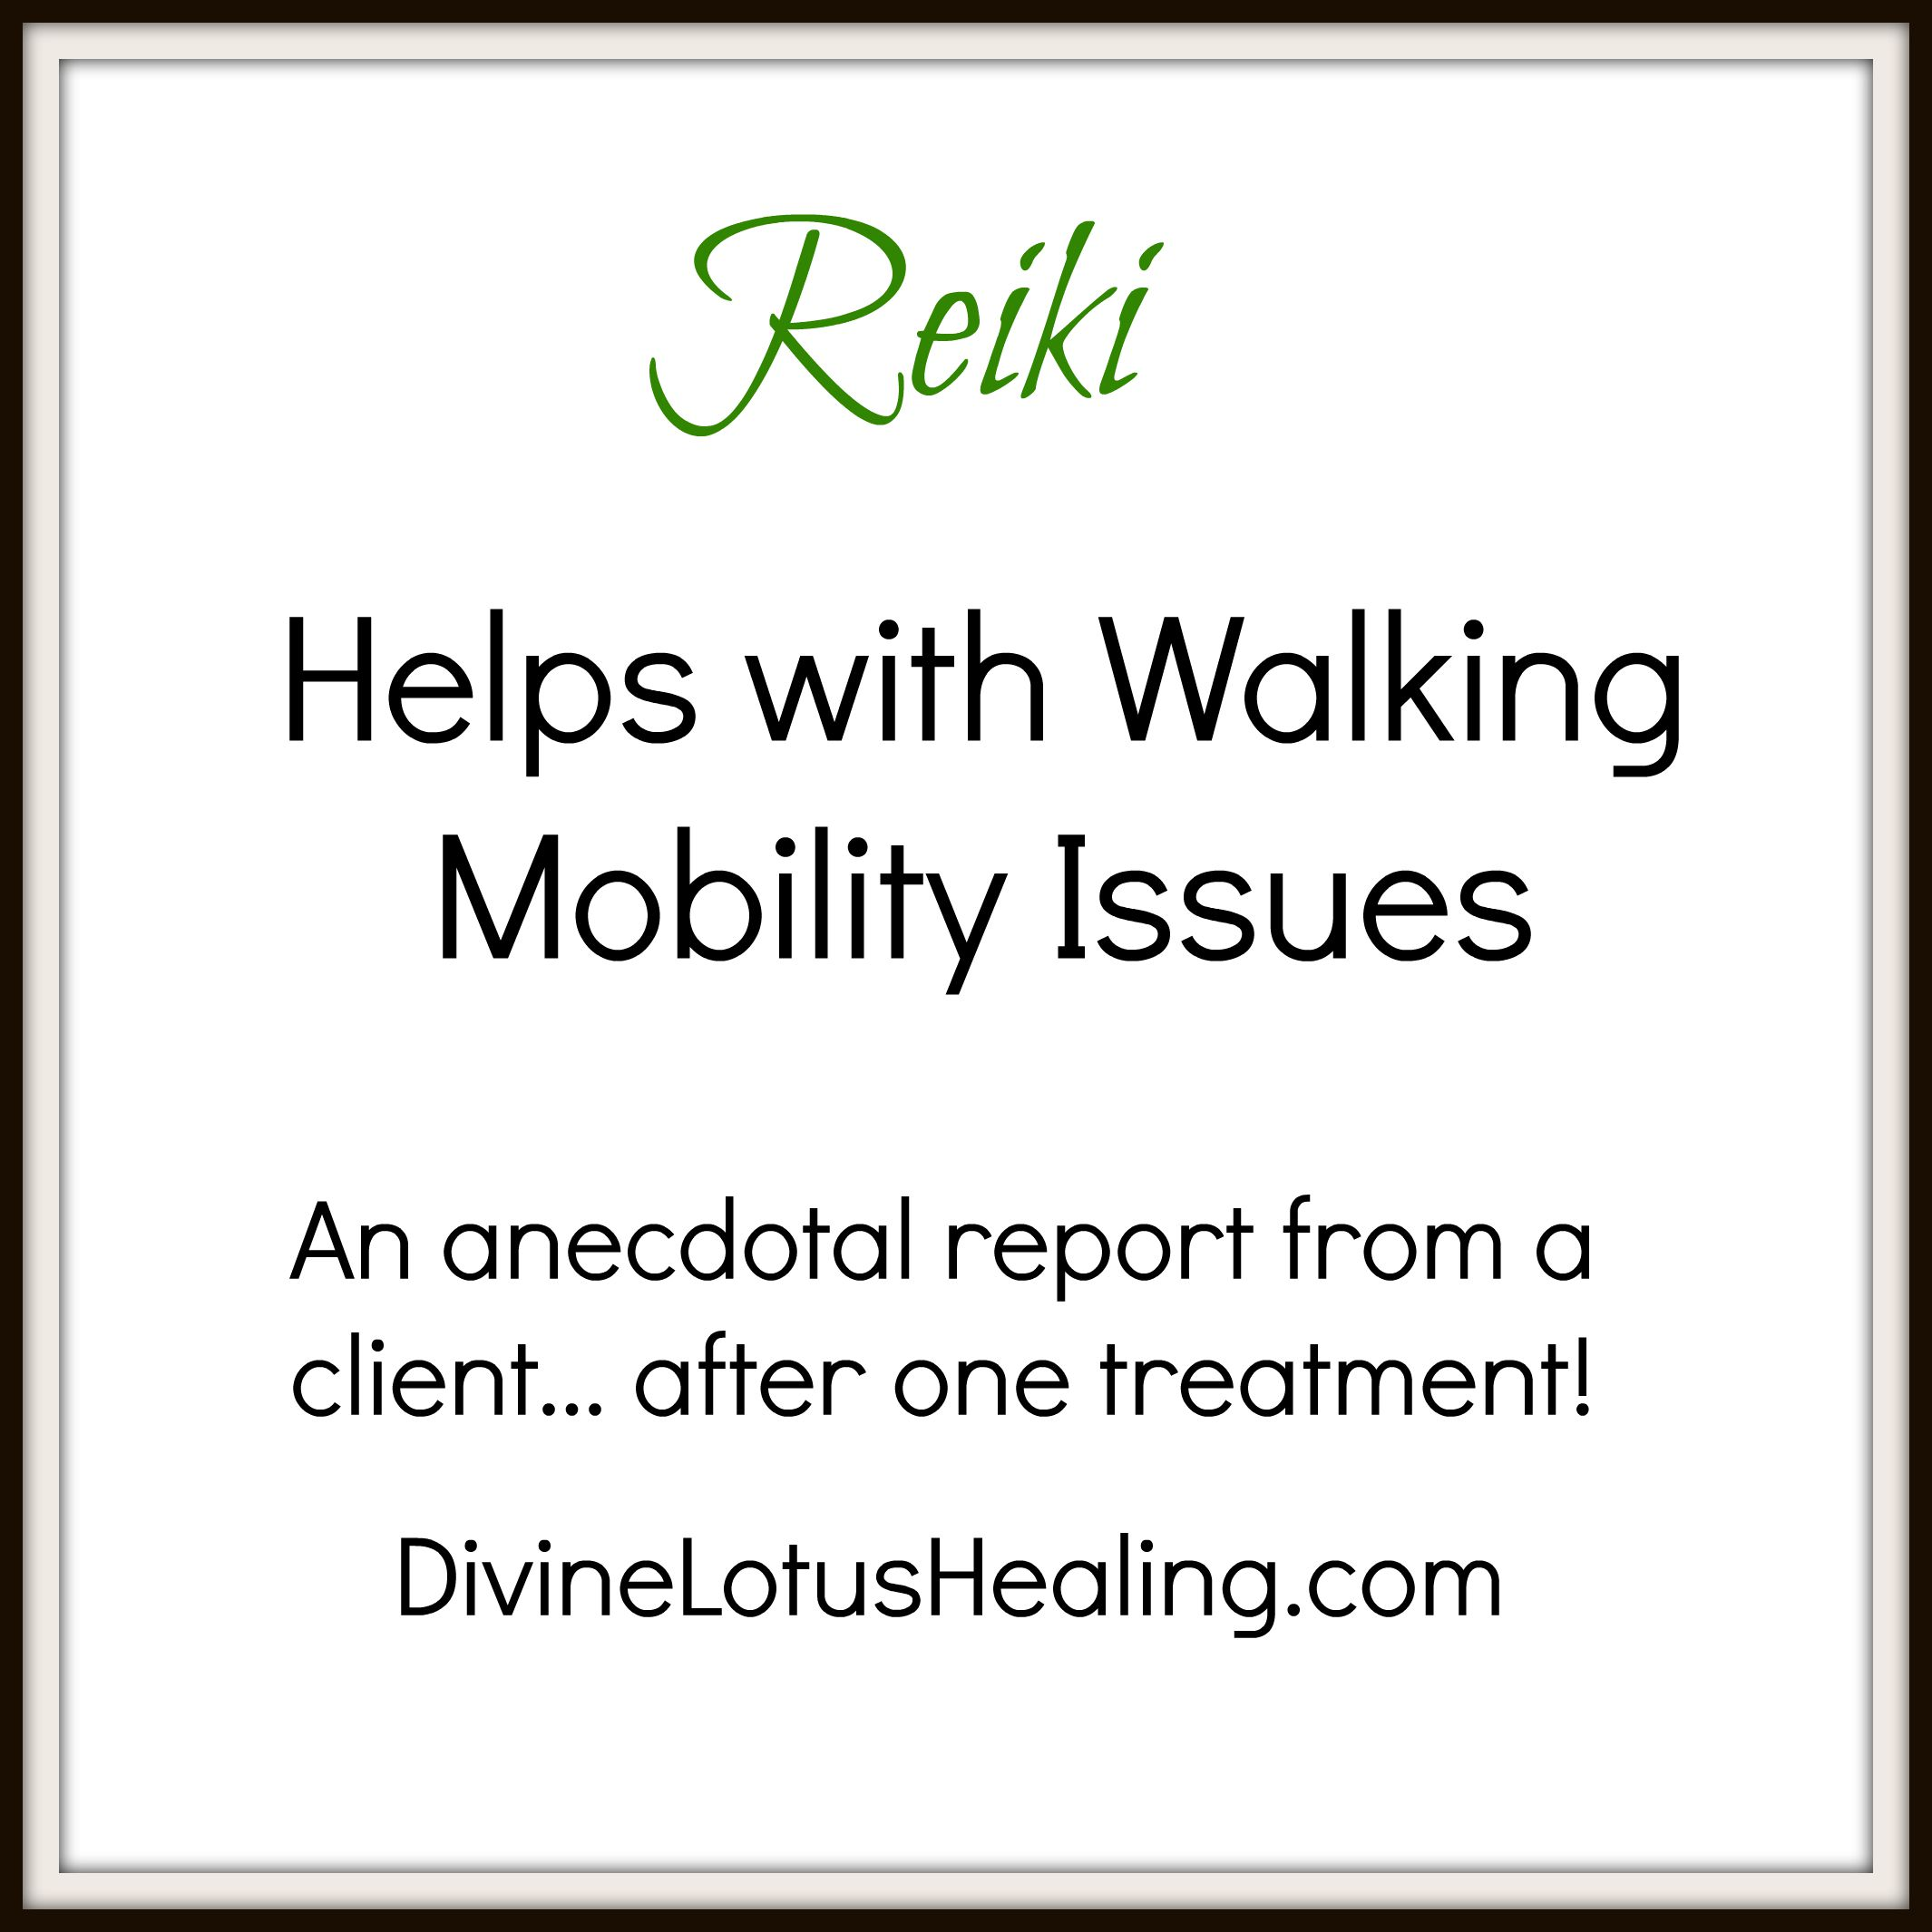 Reiki Helps with Walking Mobility Issues